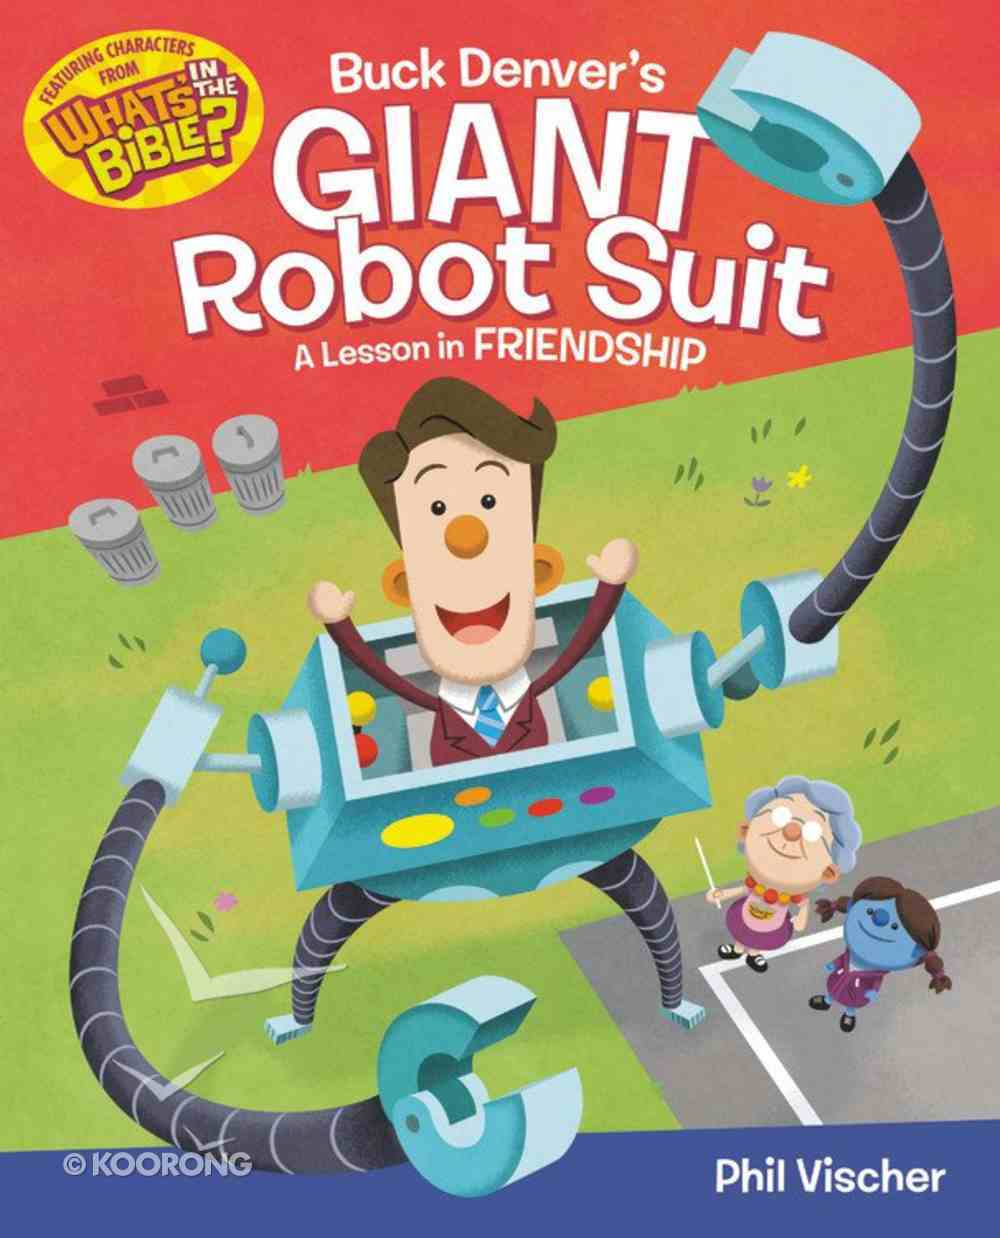 Buck Denver's Giant Robot Suit: A Lesson in Friendship (What's In The Bible Series) Hardback